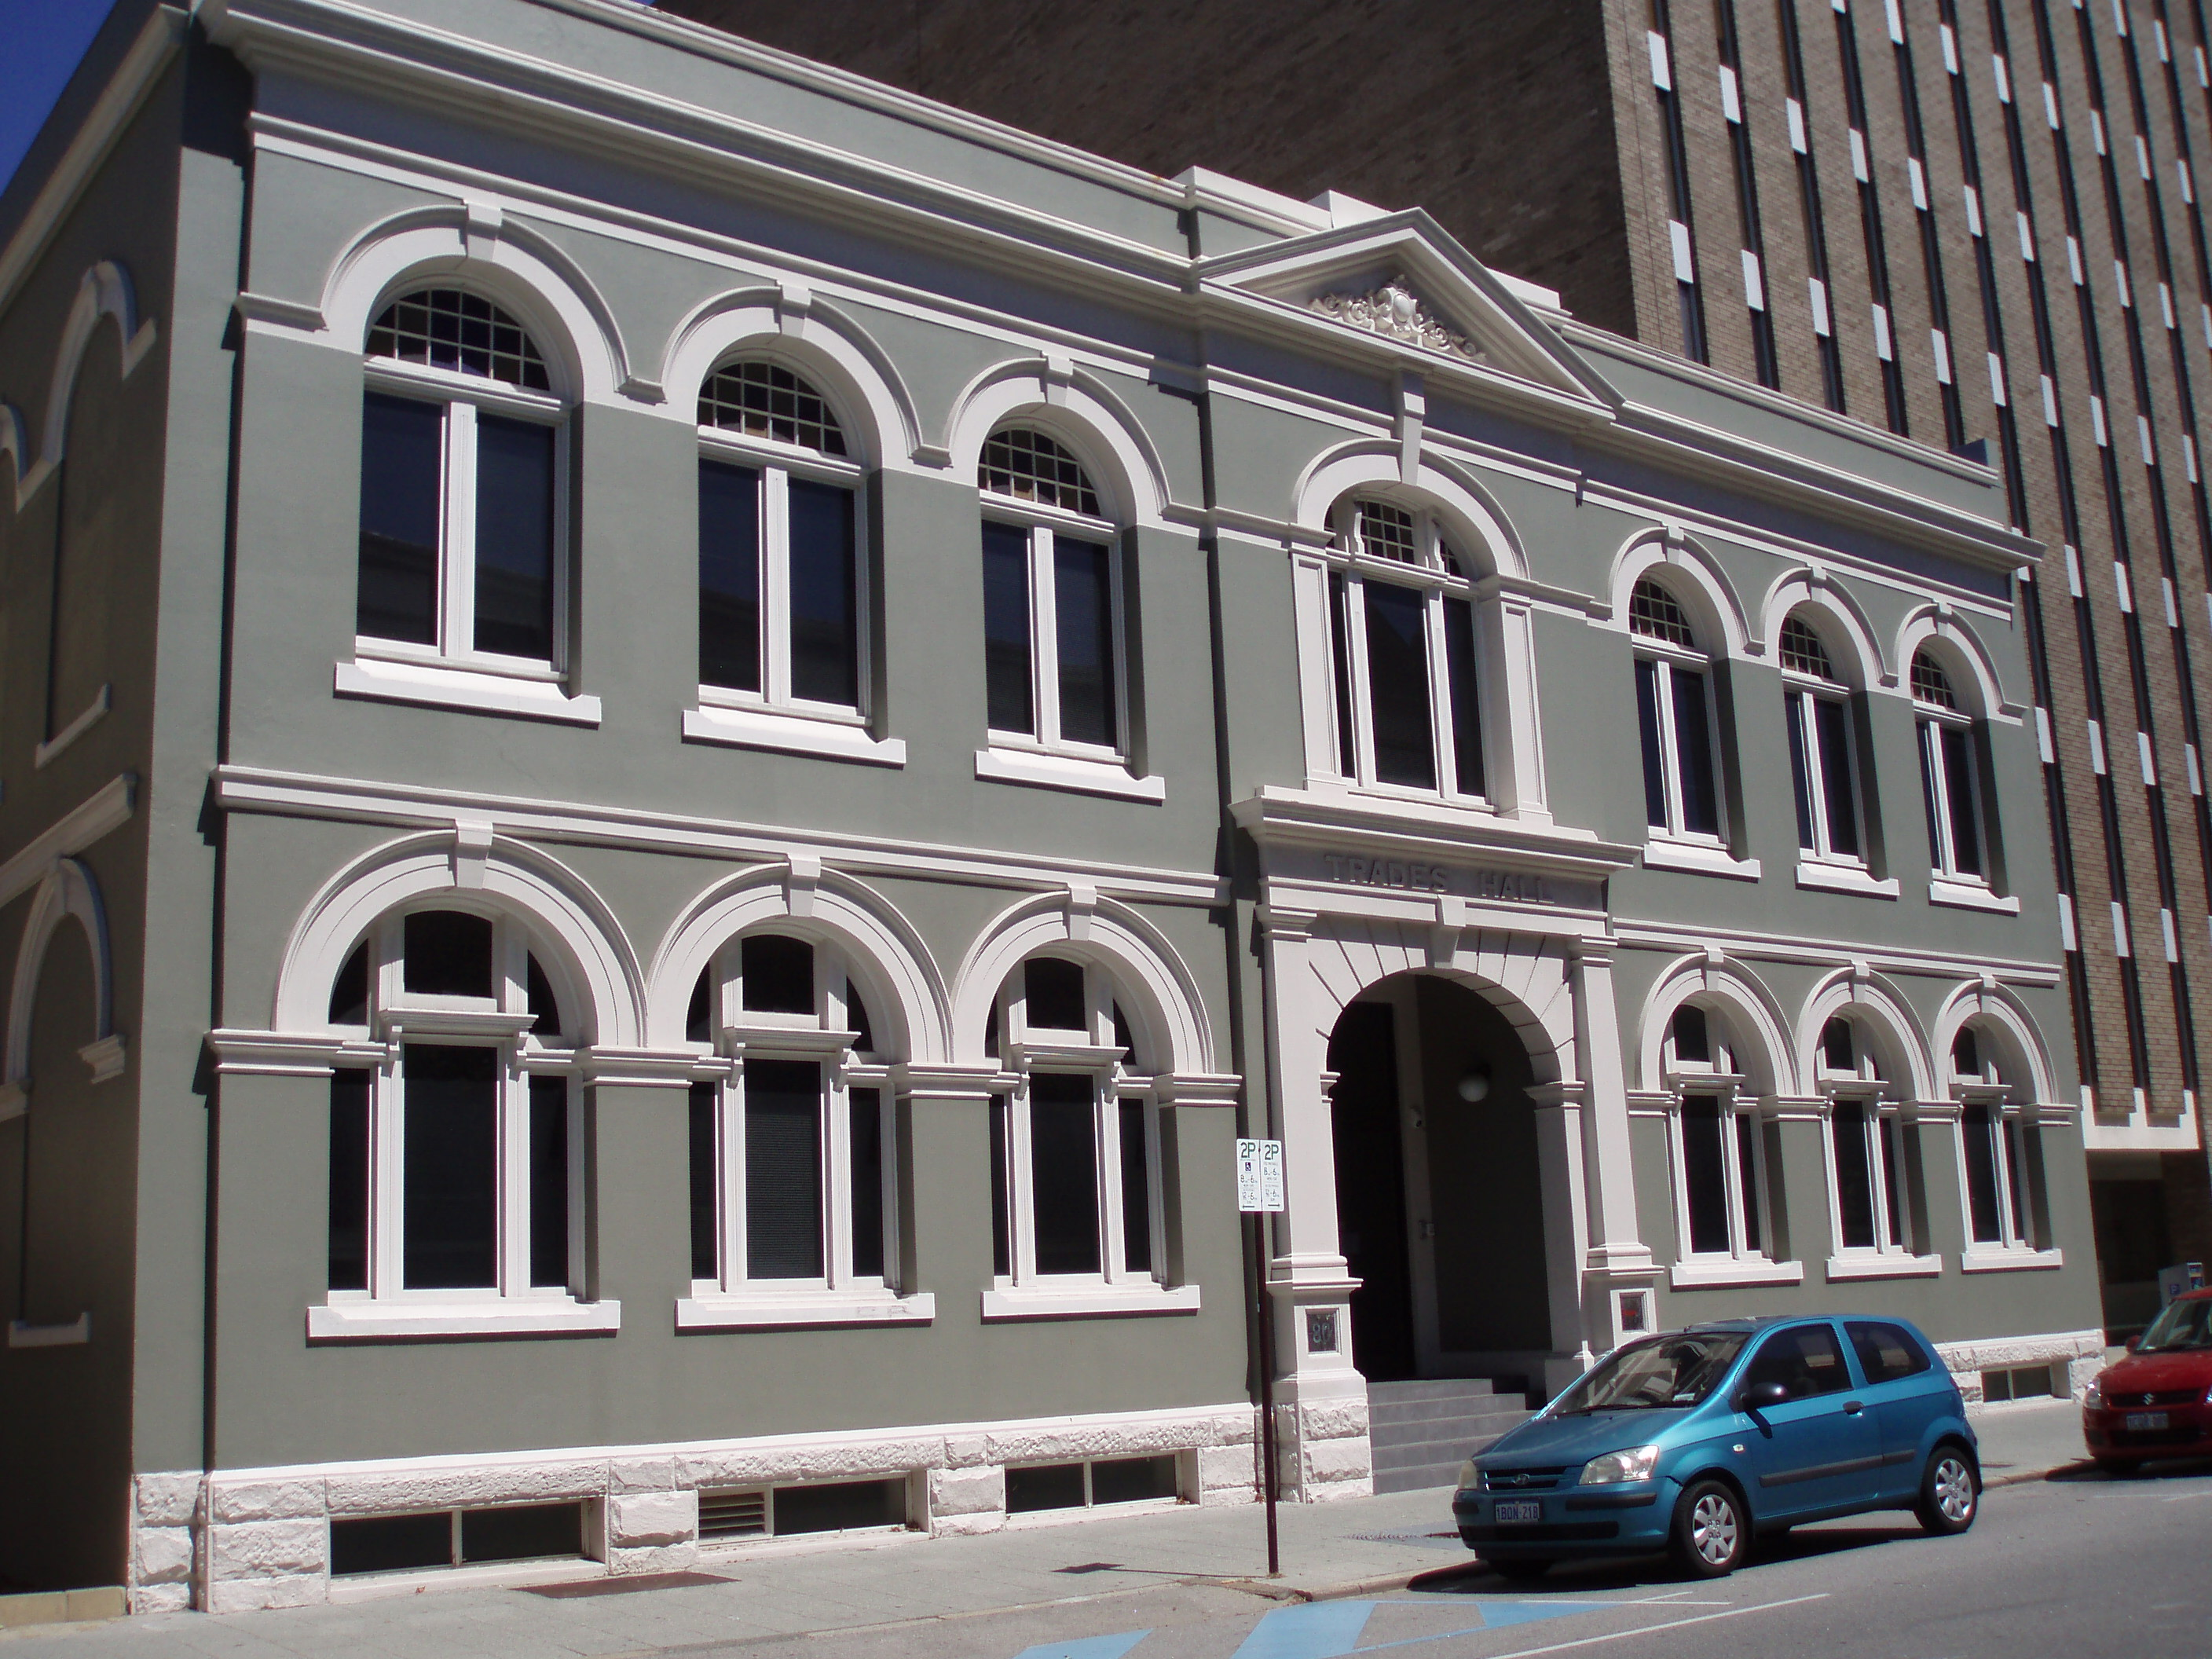 Trades Hall, west elevation